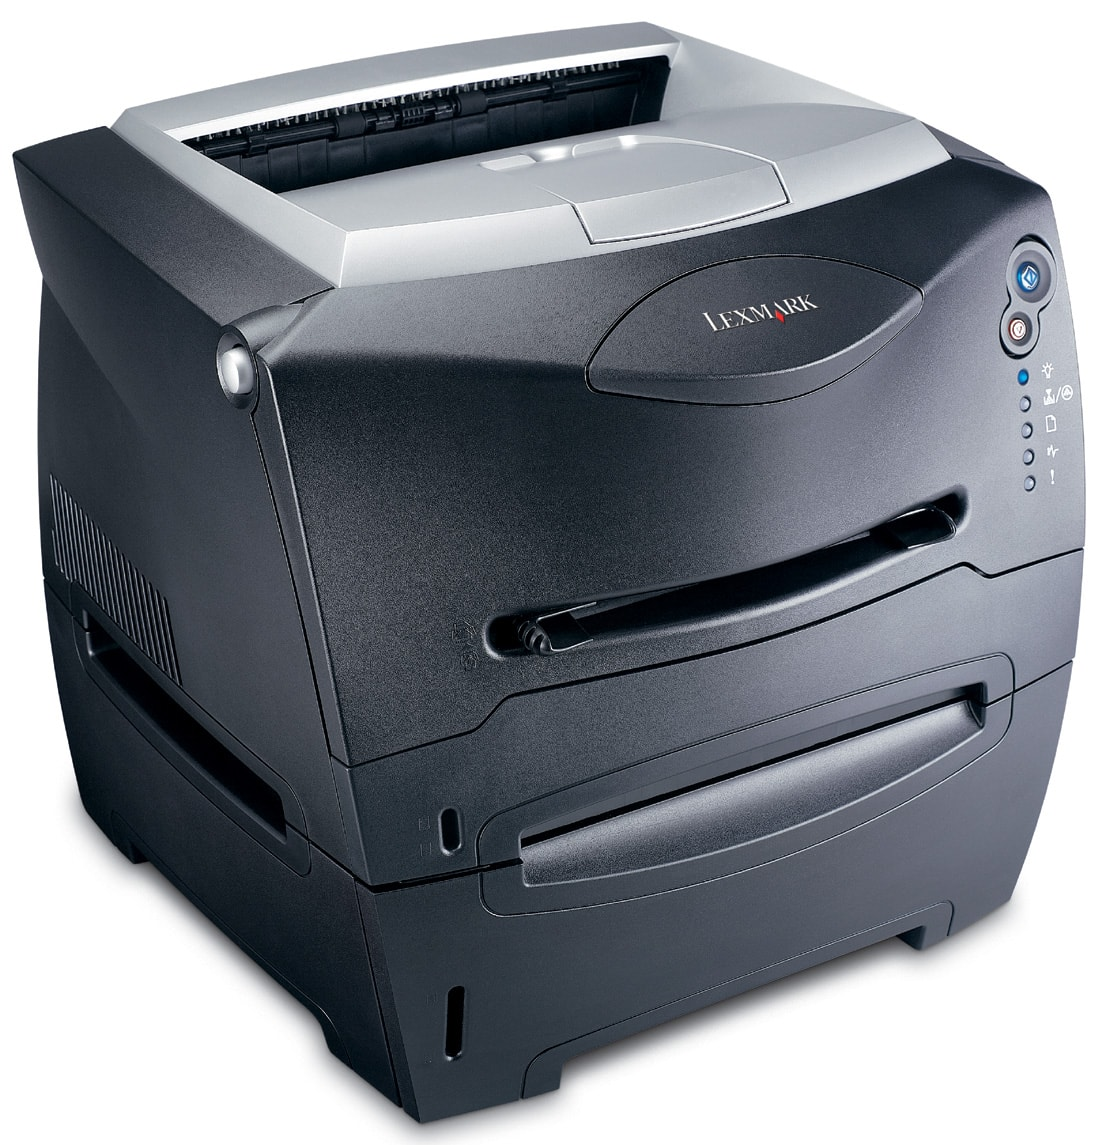 lexmark s405 printer driver for mac